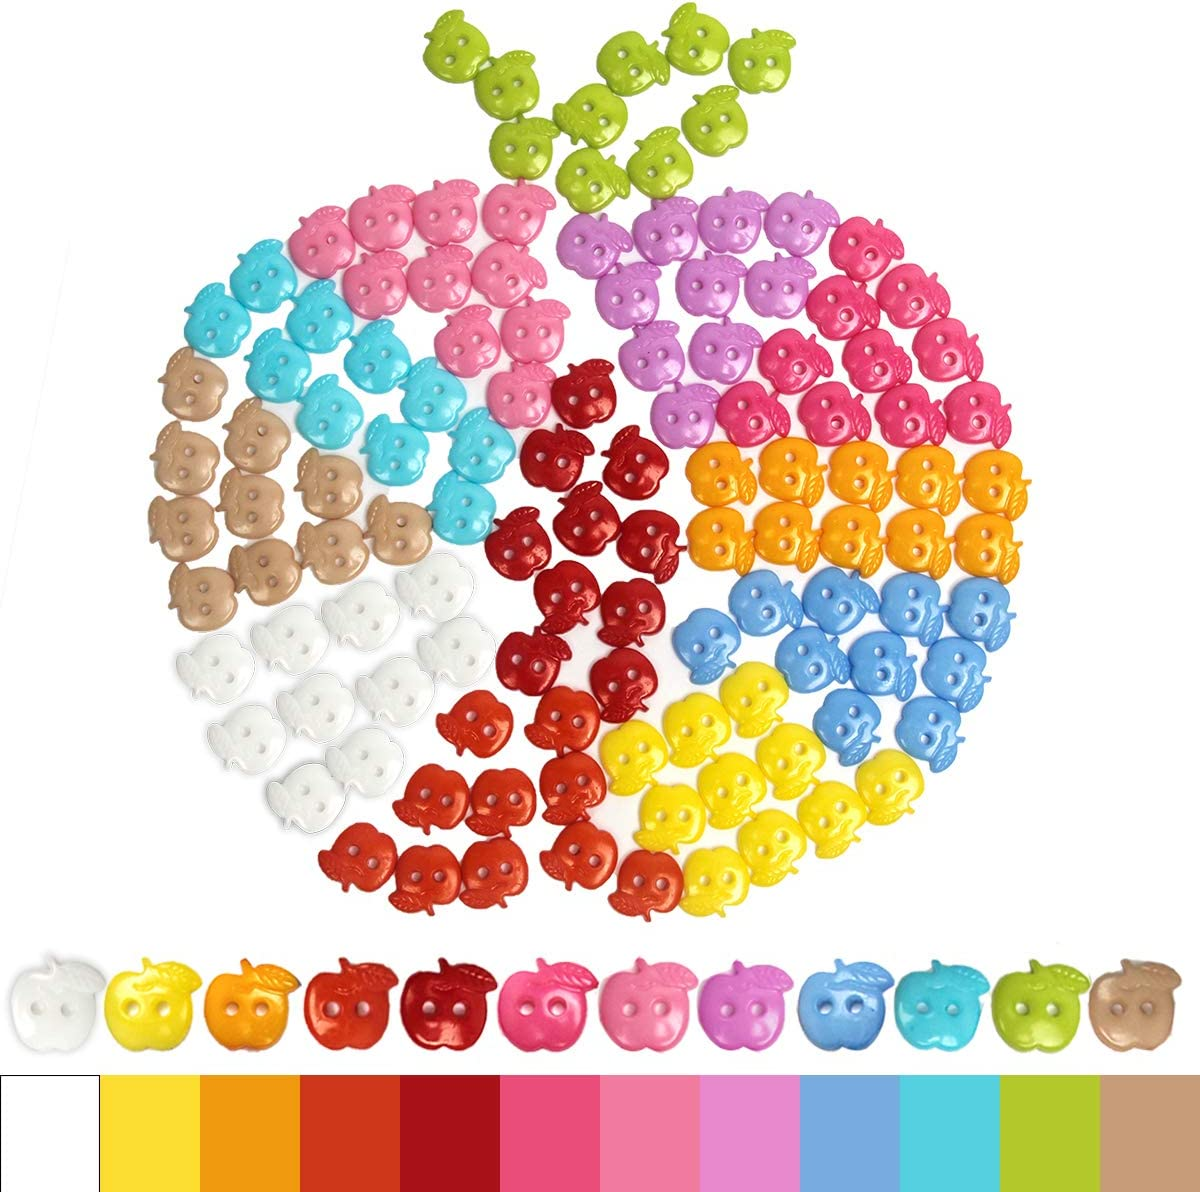 Sewing Buttons for DIY, Luxiv 120 Pcs 12 Colors Buttons Apple Shape Craft Buttons DIY Handmade for Button Painting Sewing Cloth Resin Assorted Colored Apple Buttons(120 Pack)